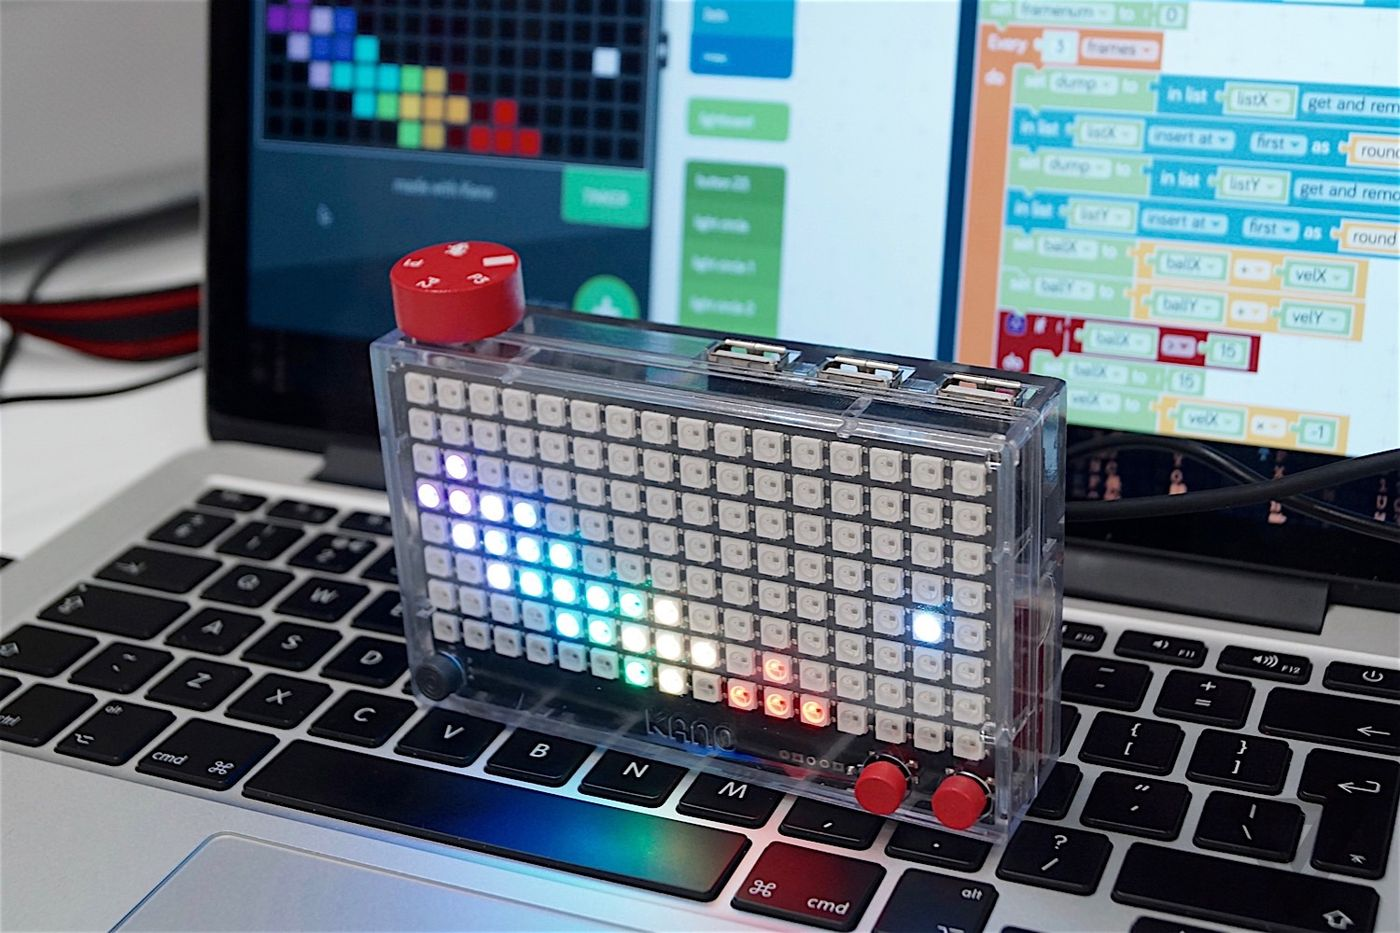 Kano's latest DIY tech kits let you assemble your own camera and speaker